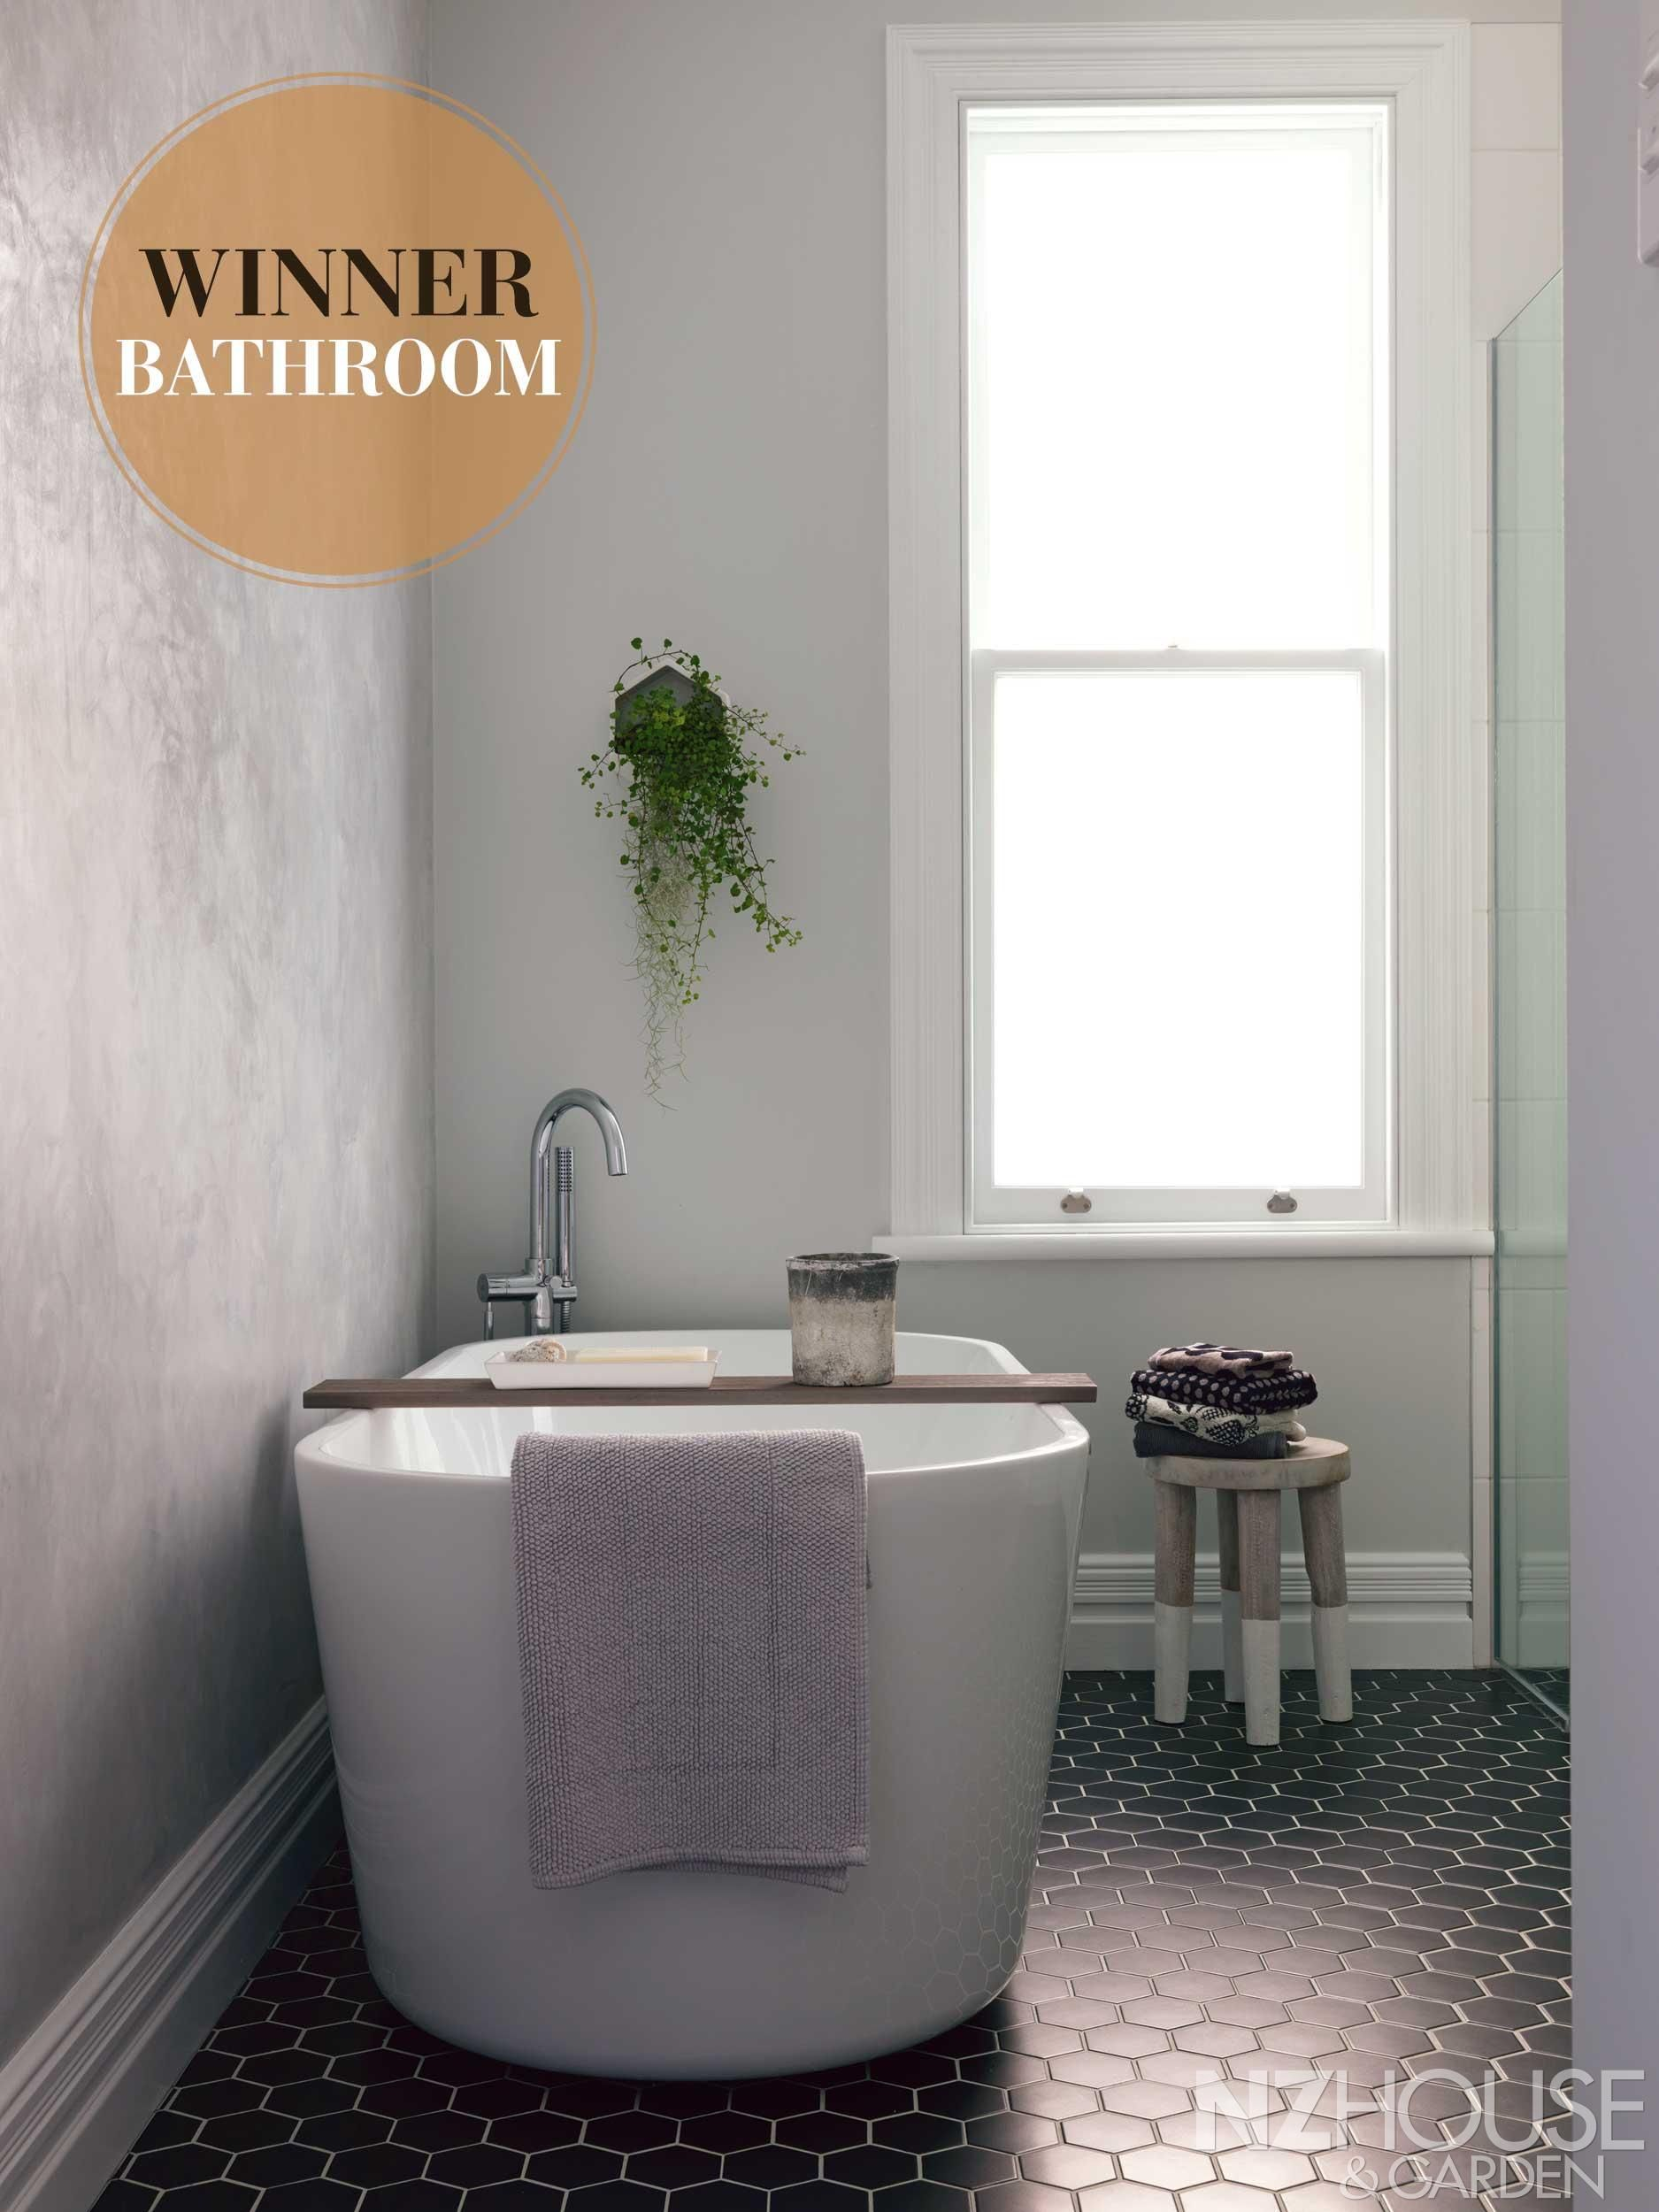 Auckland The Owner Of Last Year S Winning Bathroom Greer Clayton Got Her Hands Dirty During Creation This